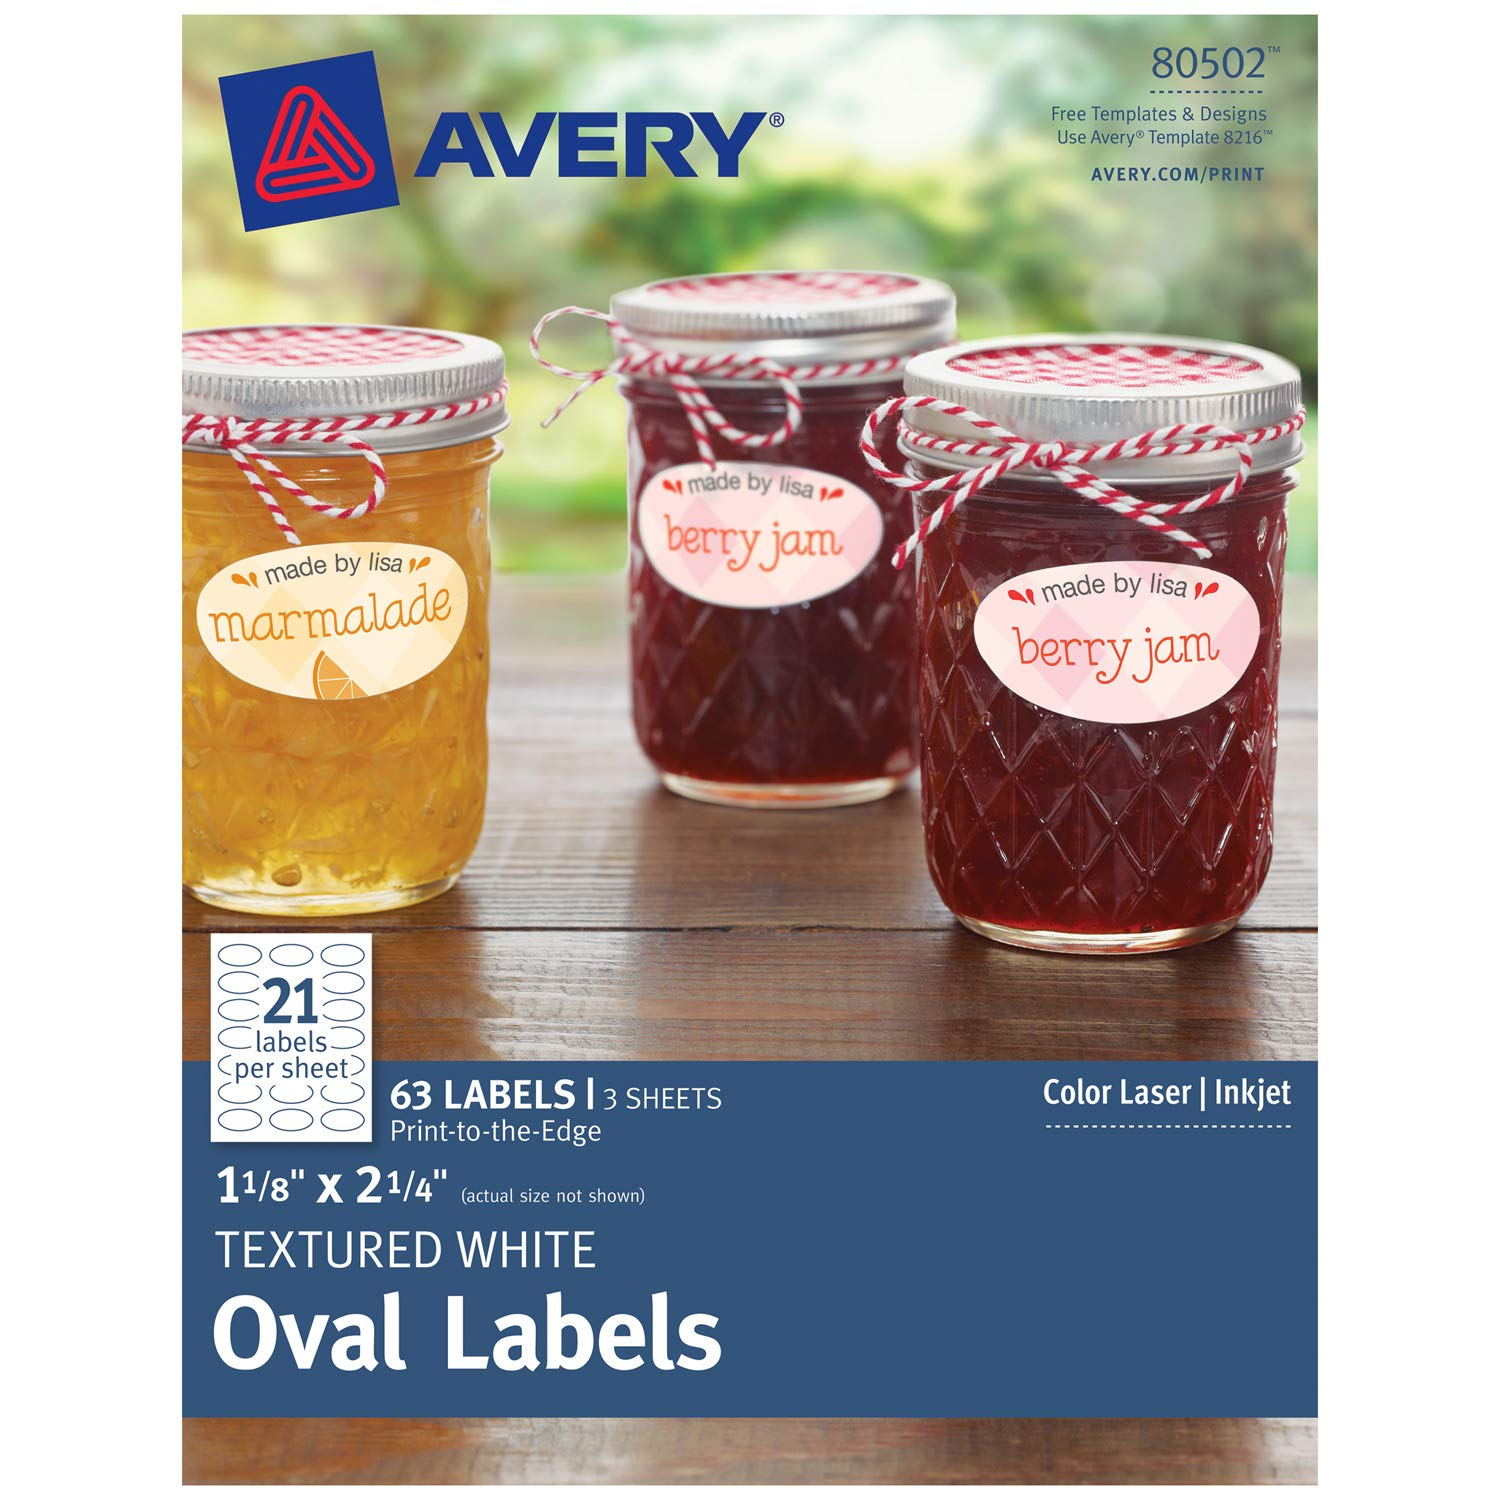 """Avery Oval Labels for Laser & Inkjet Printers, 1-1/8"""" x 2-1/4"""", 63 Textured Matte White Labels (80502)"""